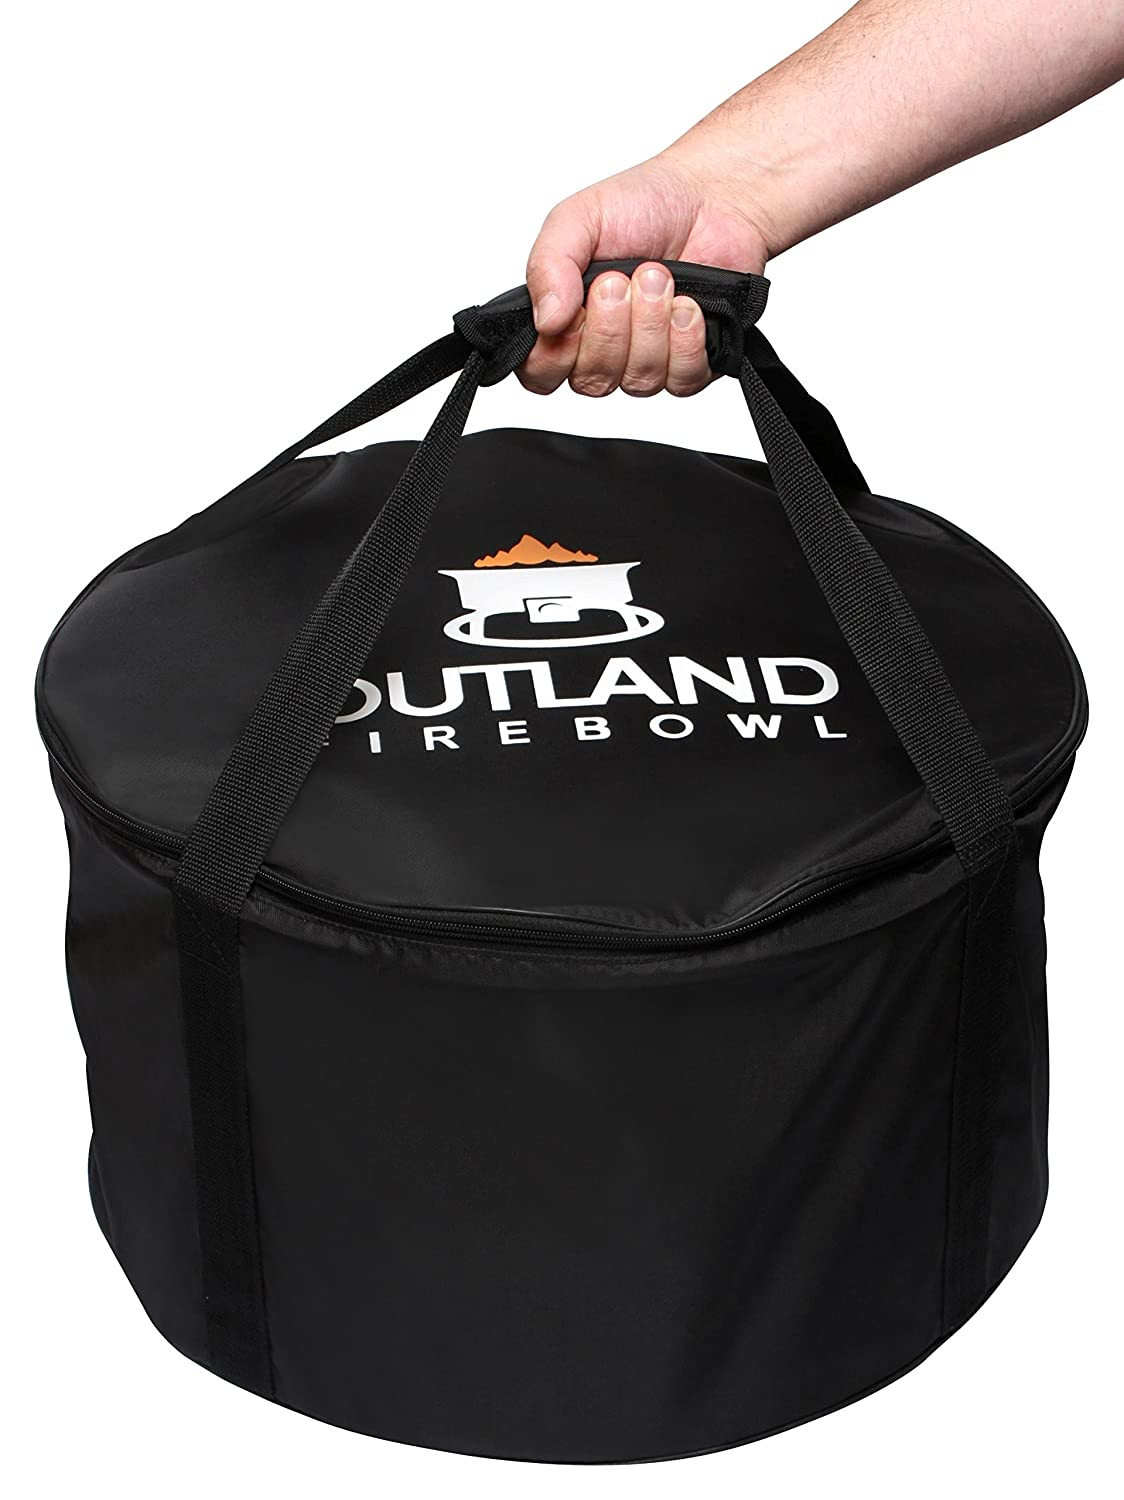 Outland Firebowl UV and Weather Resistant 760 Standard Carry Bag, Fits 19-Inch Diameter Outdoor Portable Propane Gas Fire Pit Outland Living